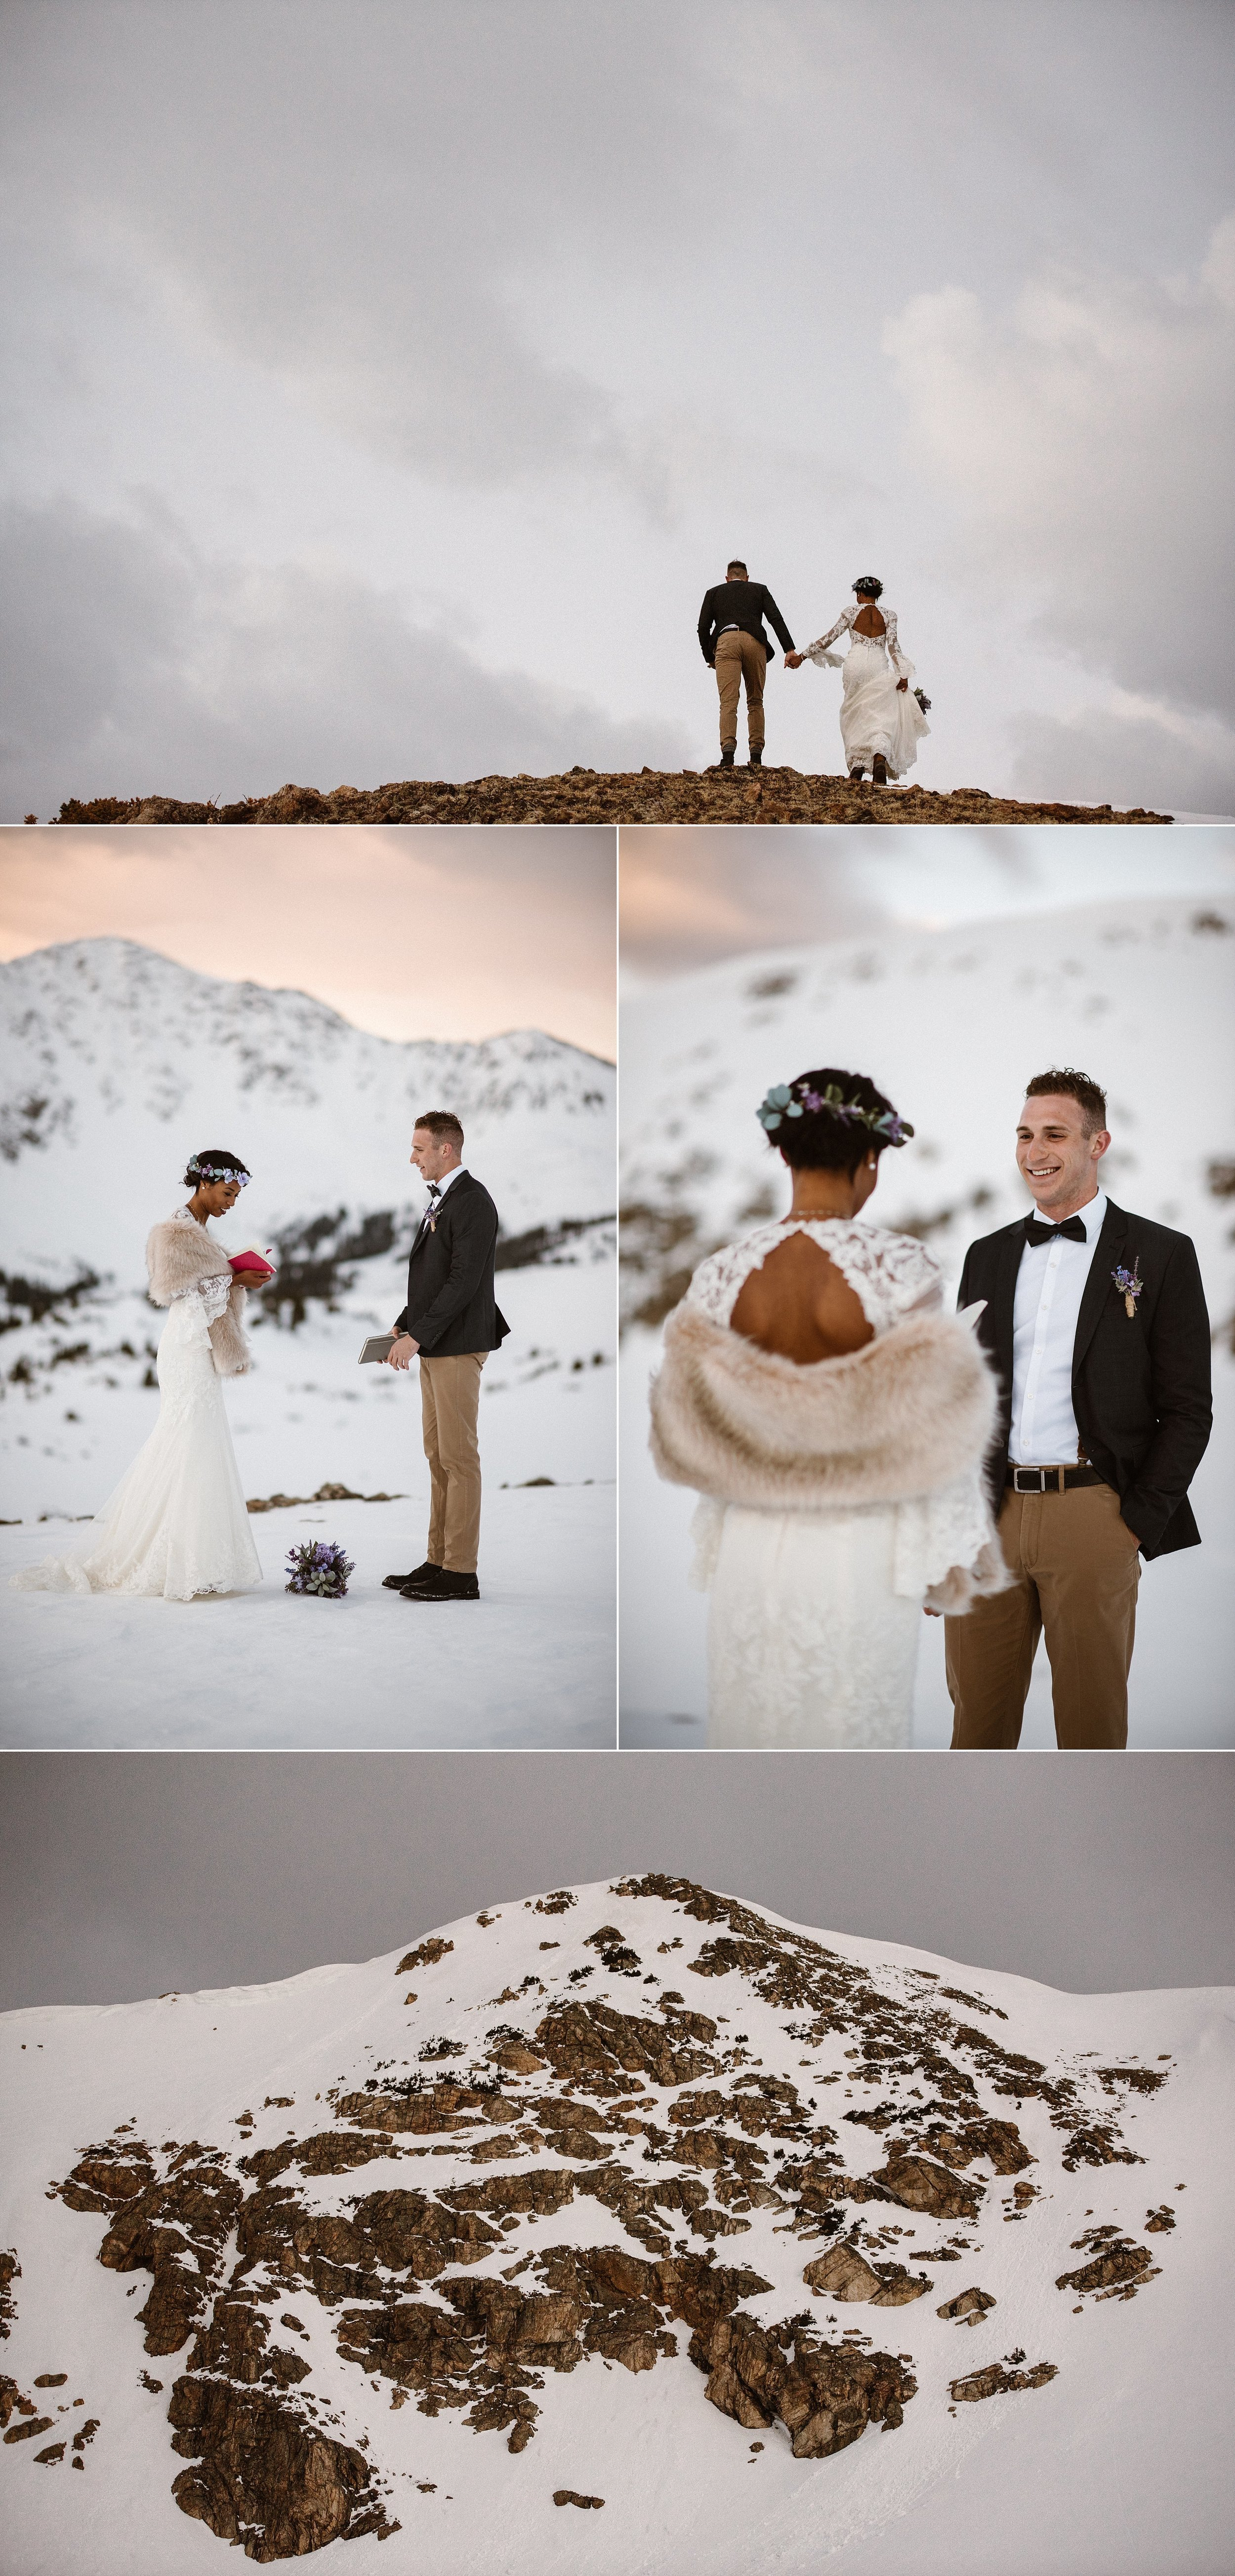 Wandering their way through the mountains Mikayla and Jared hunted for the perfect spot for their vows. Colorado is a self solemnizing state, allowing couples to marry themselves without an officiant. This intimate elopement captured by wedding photographer Maddie Mae.